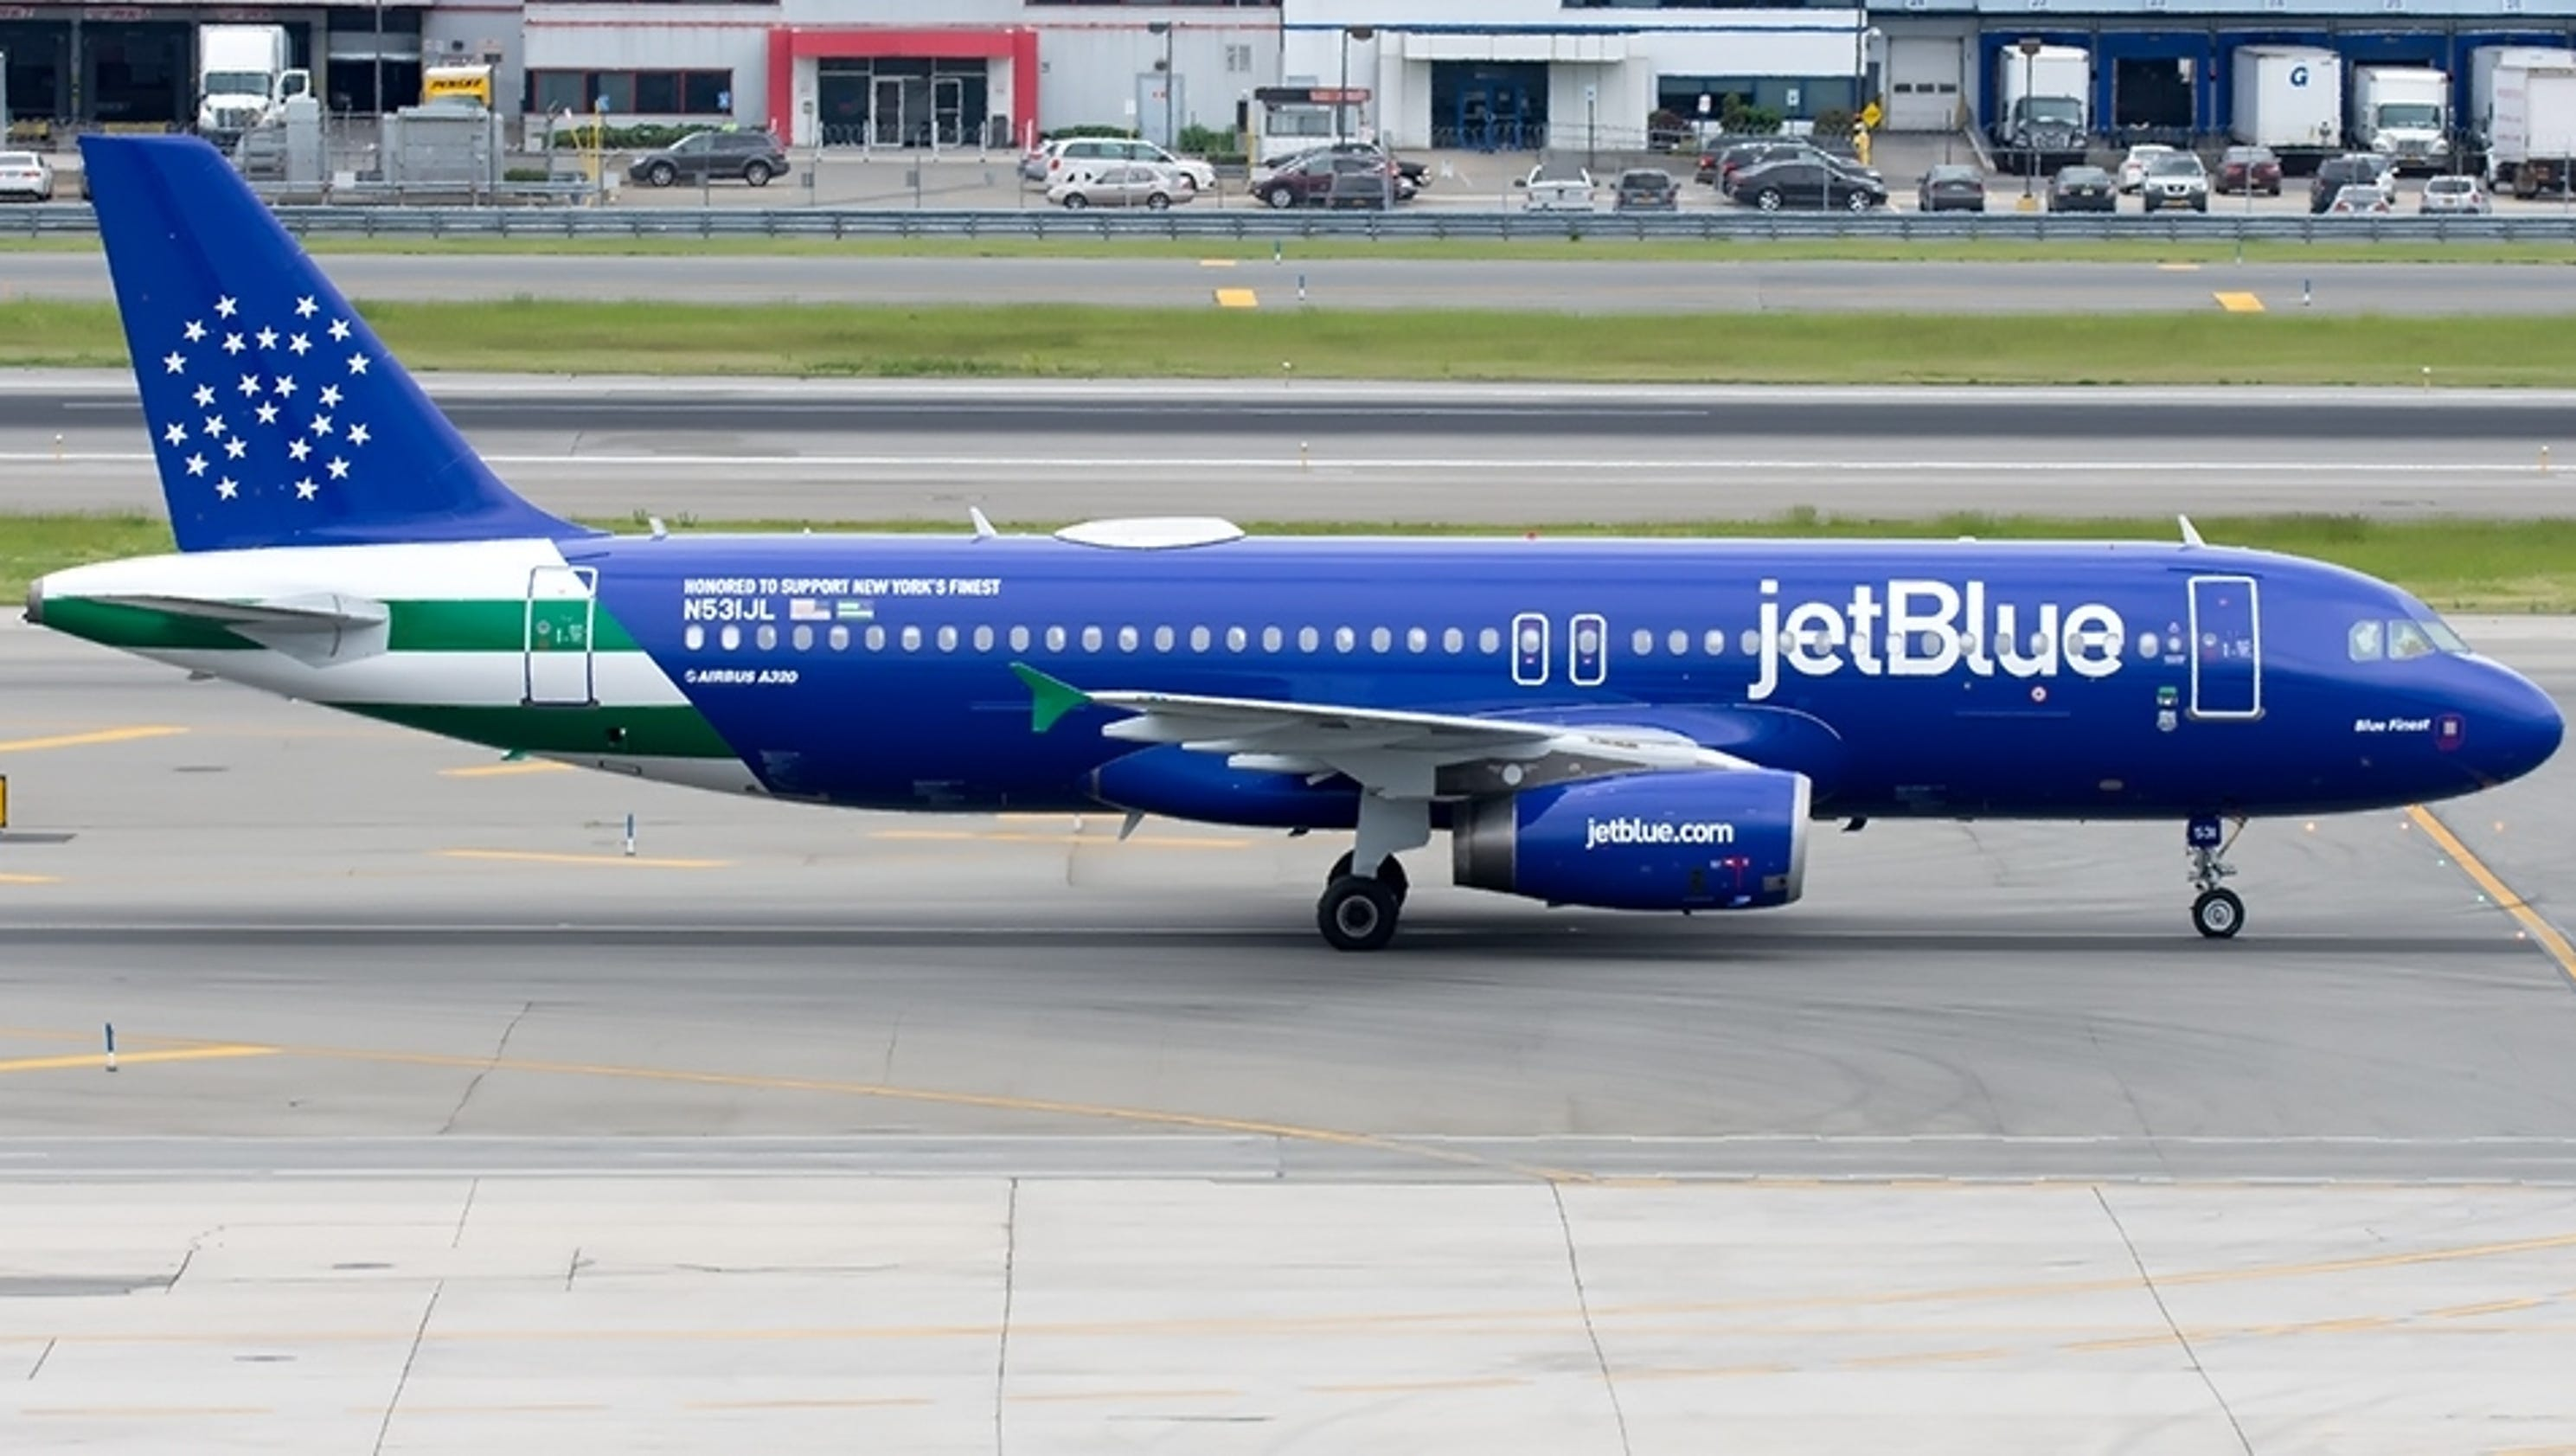 JetBlue is an American airline, and the 6th-largest airline in the United States. Founded on August , the airline is headquartered at the Long Island City neighborhood of the New York City.